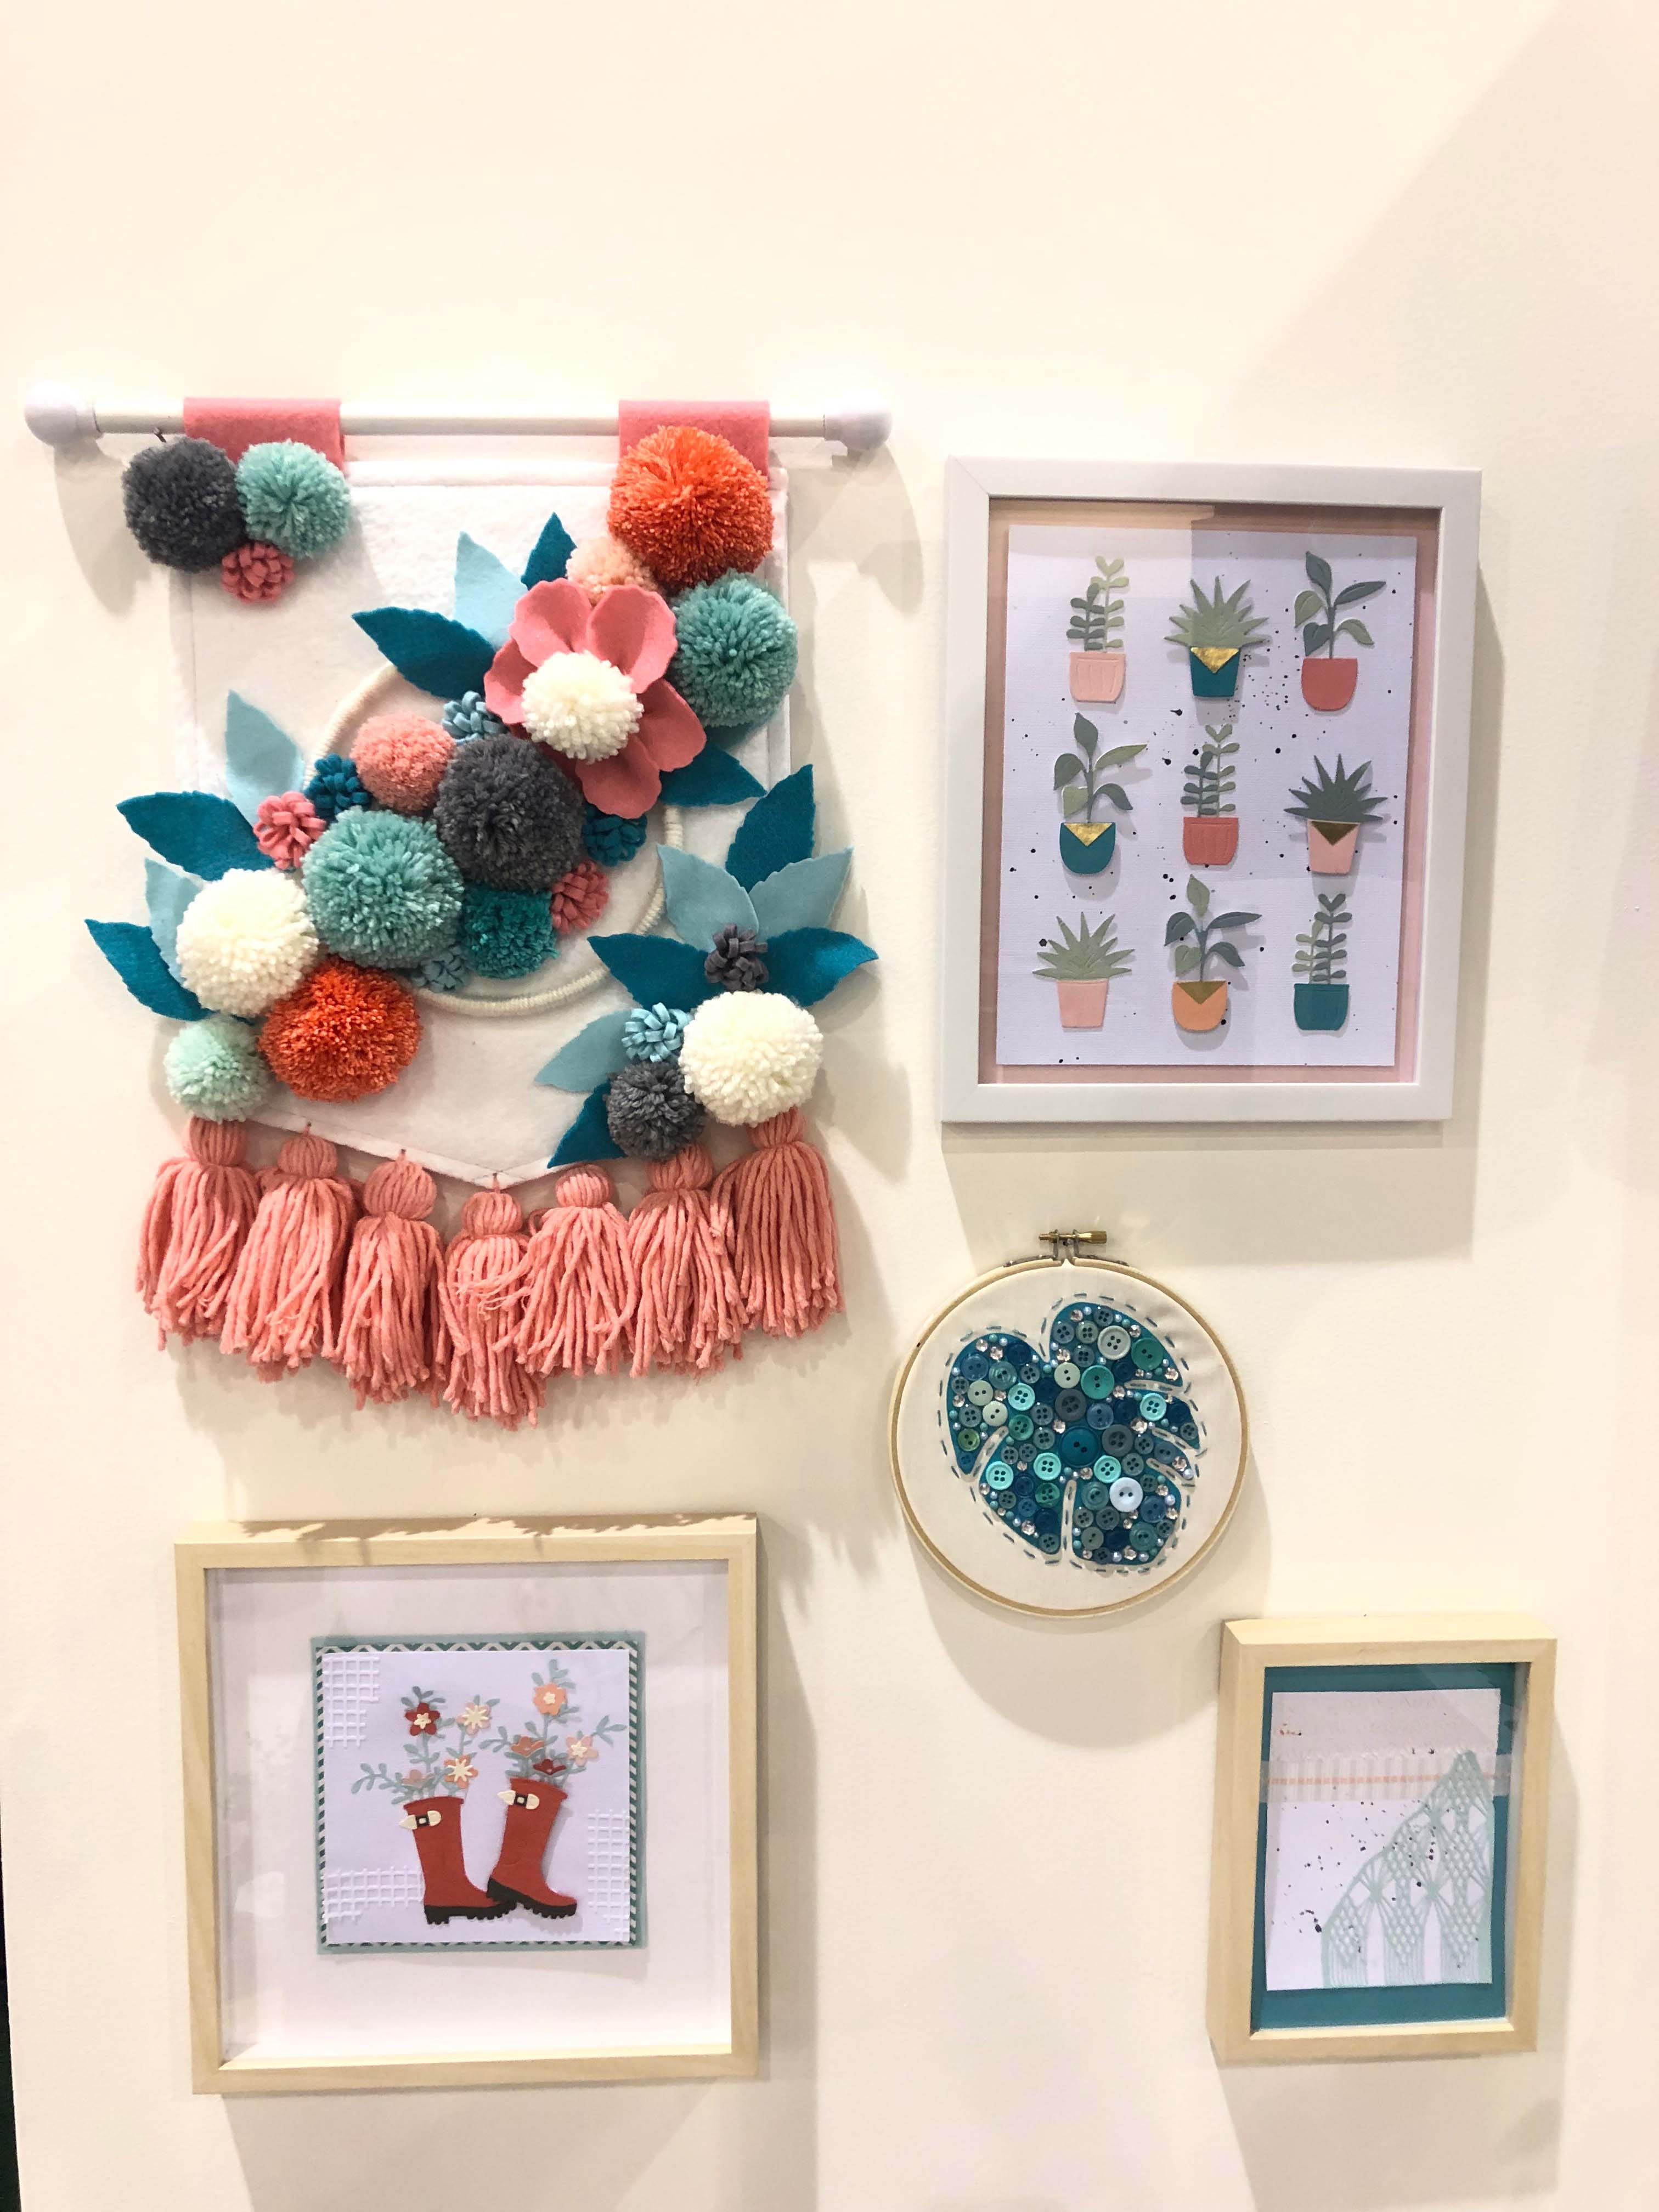 Happiness Is Handmade A Tour Of The Sizzix Lifestyle Home At